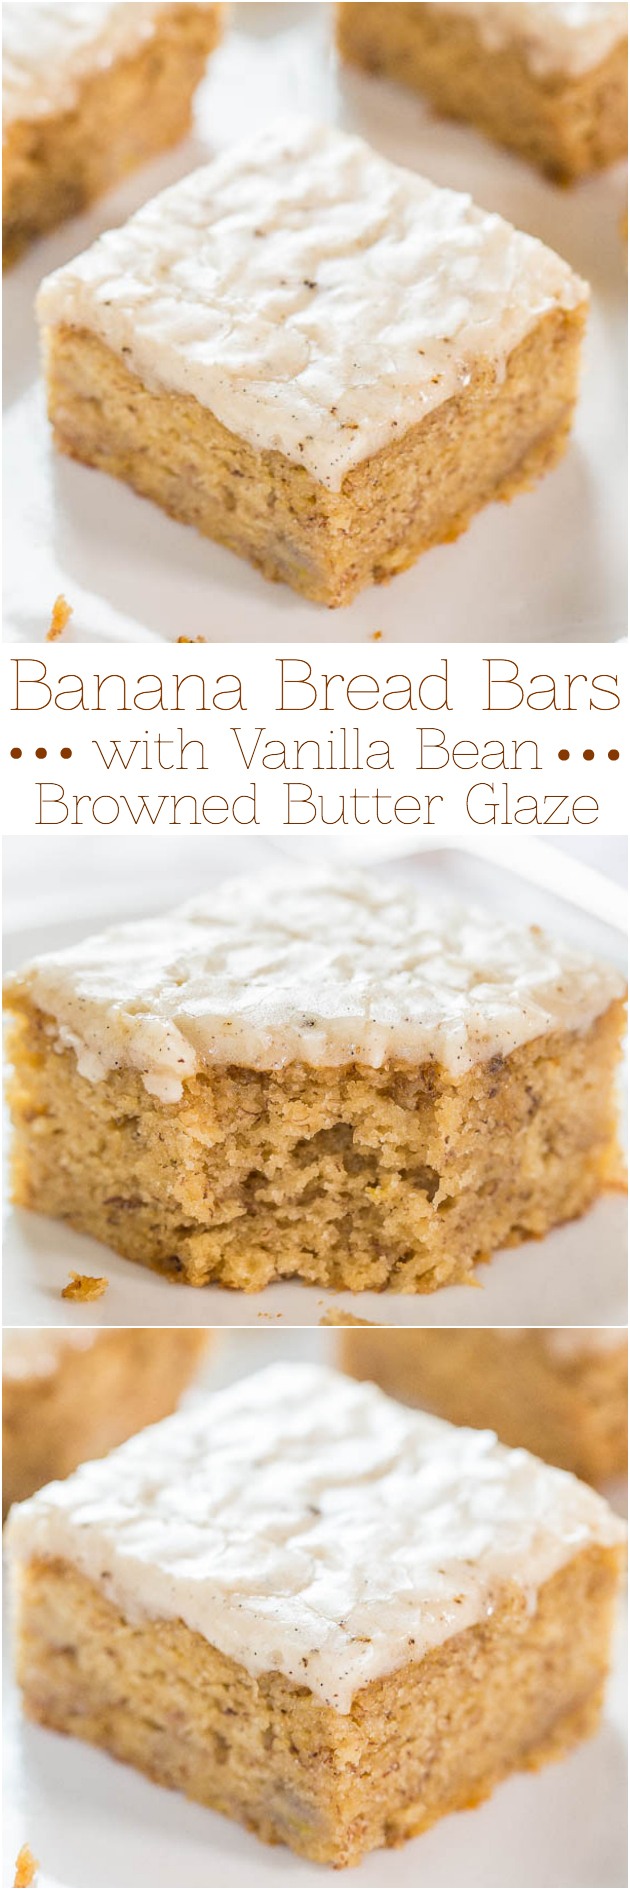 Glazed Banana Bread Bars — Banana bread in bar form with a glaze that soaks in and is just so darn good! Dense enough to be satisfying, but still perfectly light, fluffy, and packed with rich banana flavor!